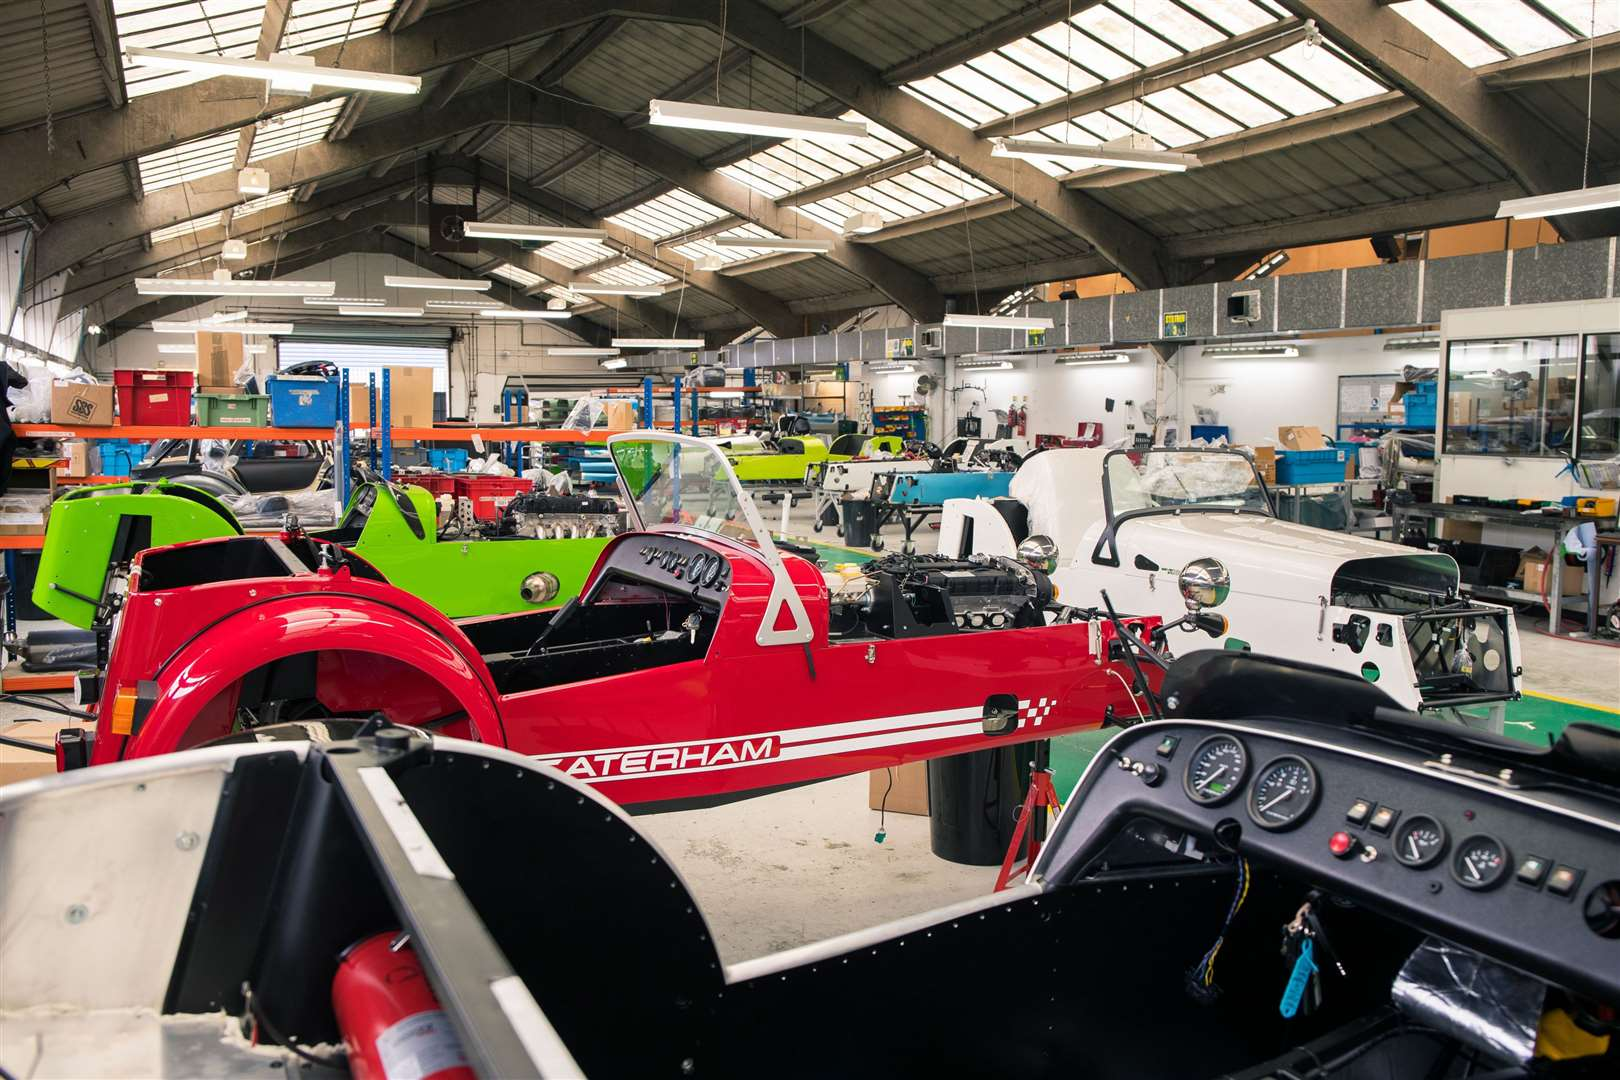 The Caterham factory in Dartford. Picture: PA Photo/Johnny Fleewood